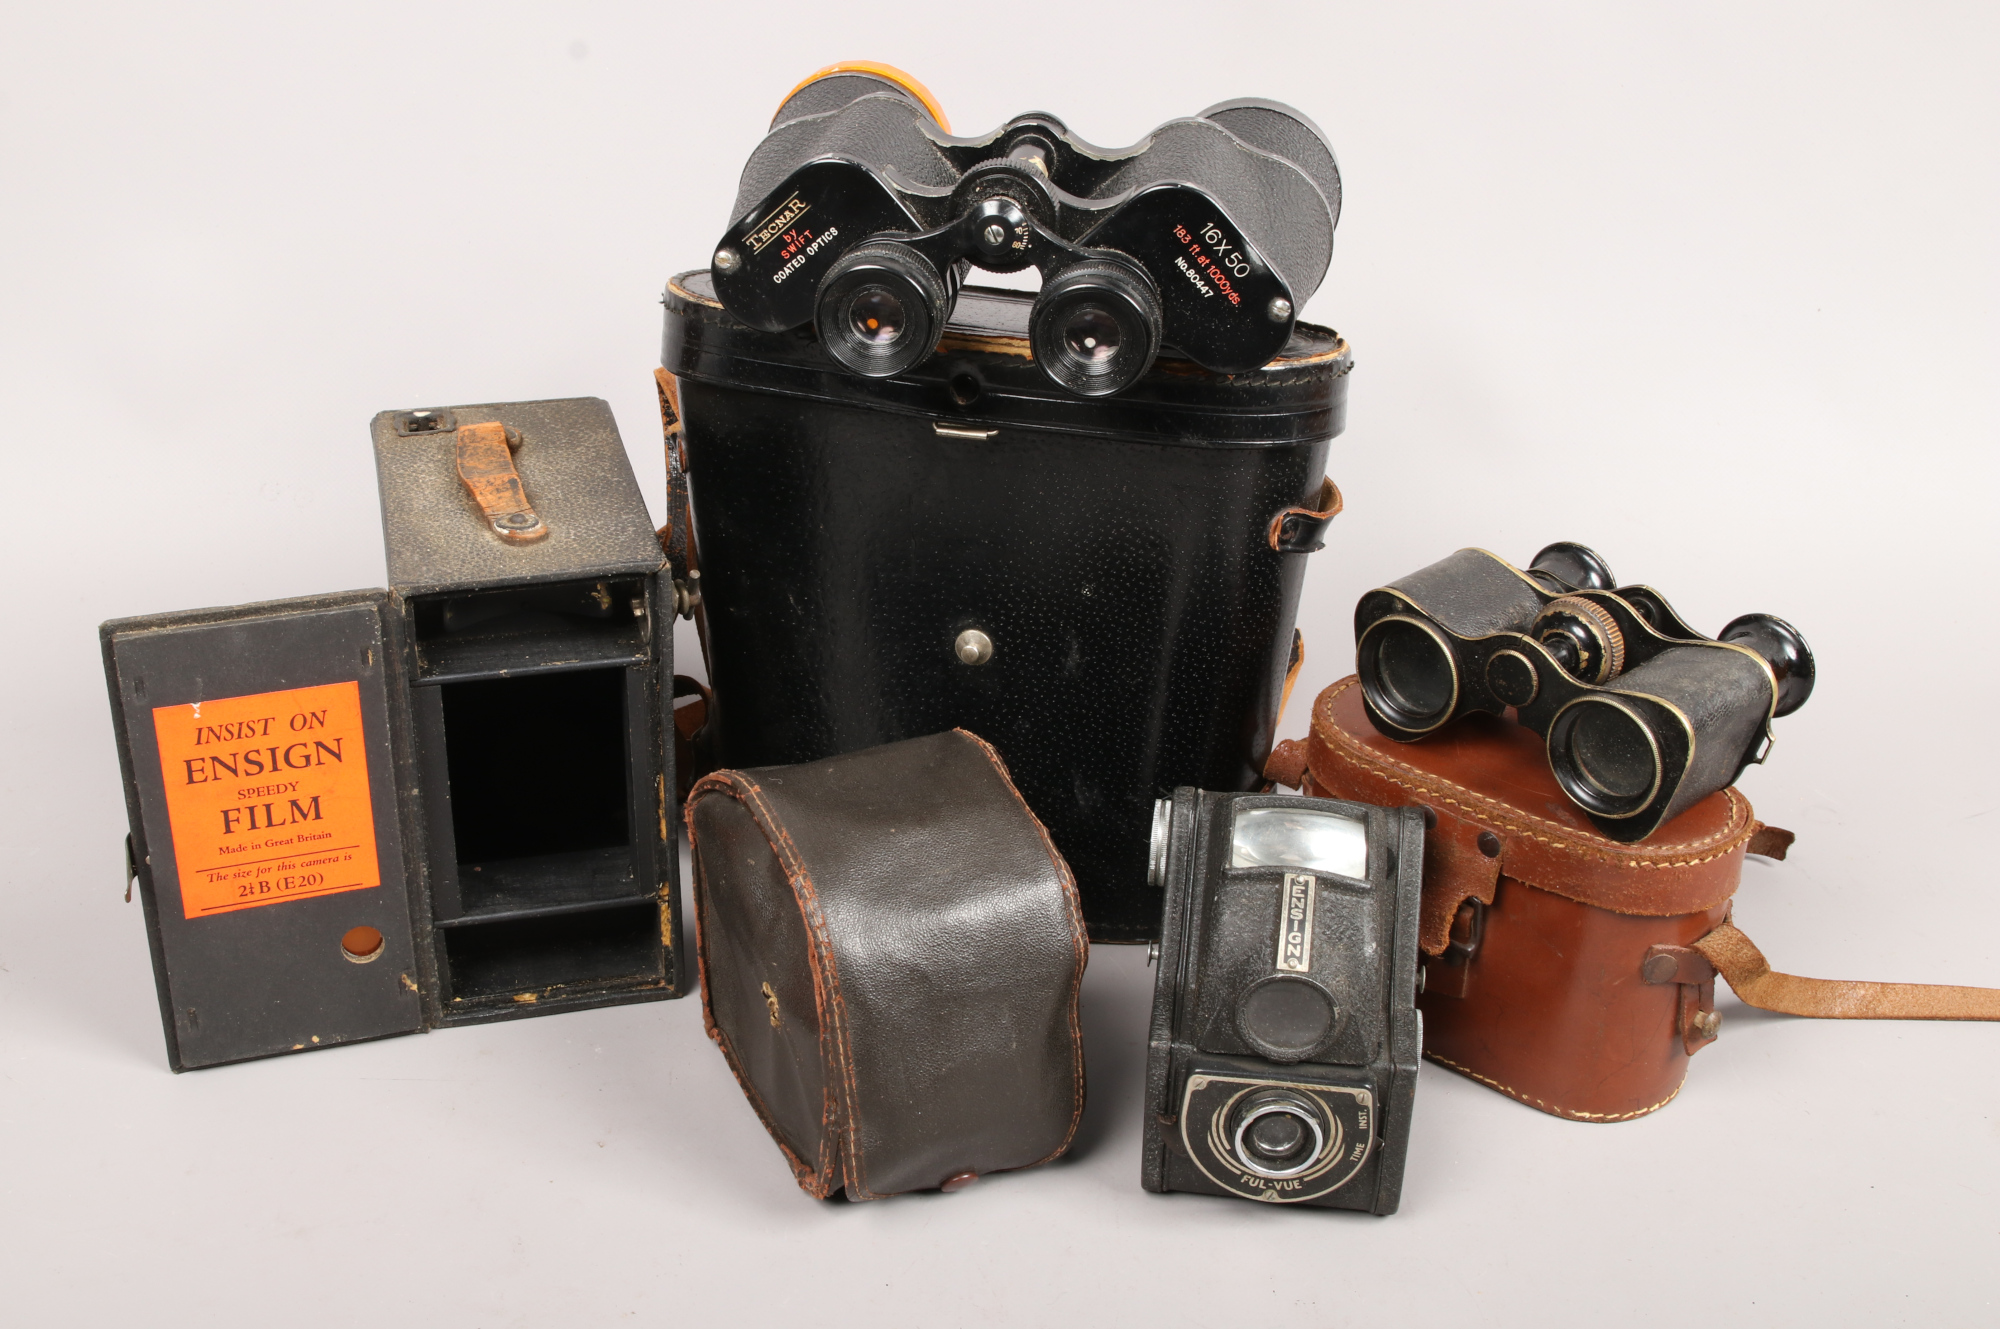 Lot 4 - Two pairs of cased binoculars to include Tecnar 16 x 50, Ensign Ful-Vue camera etc.